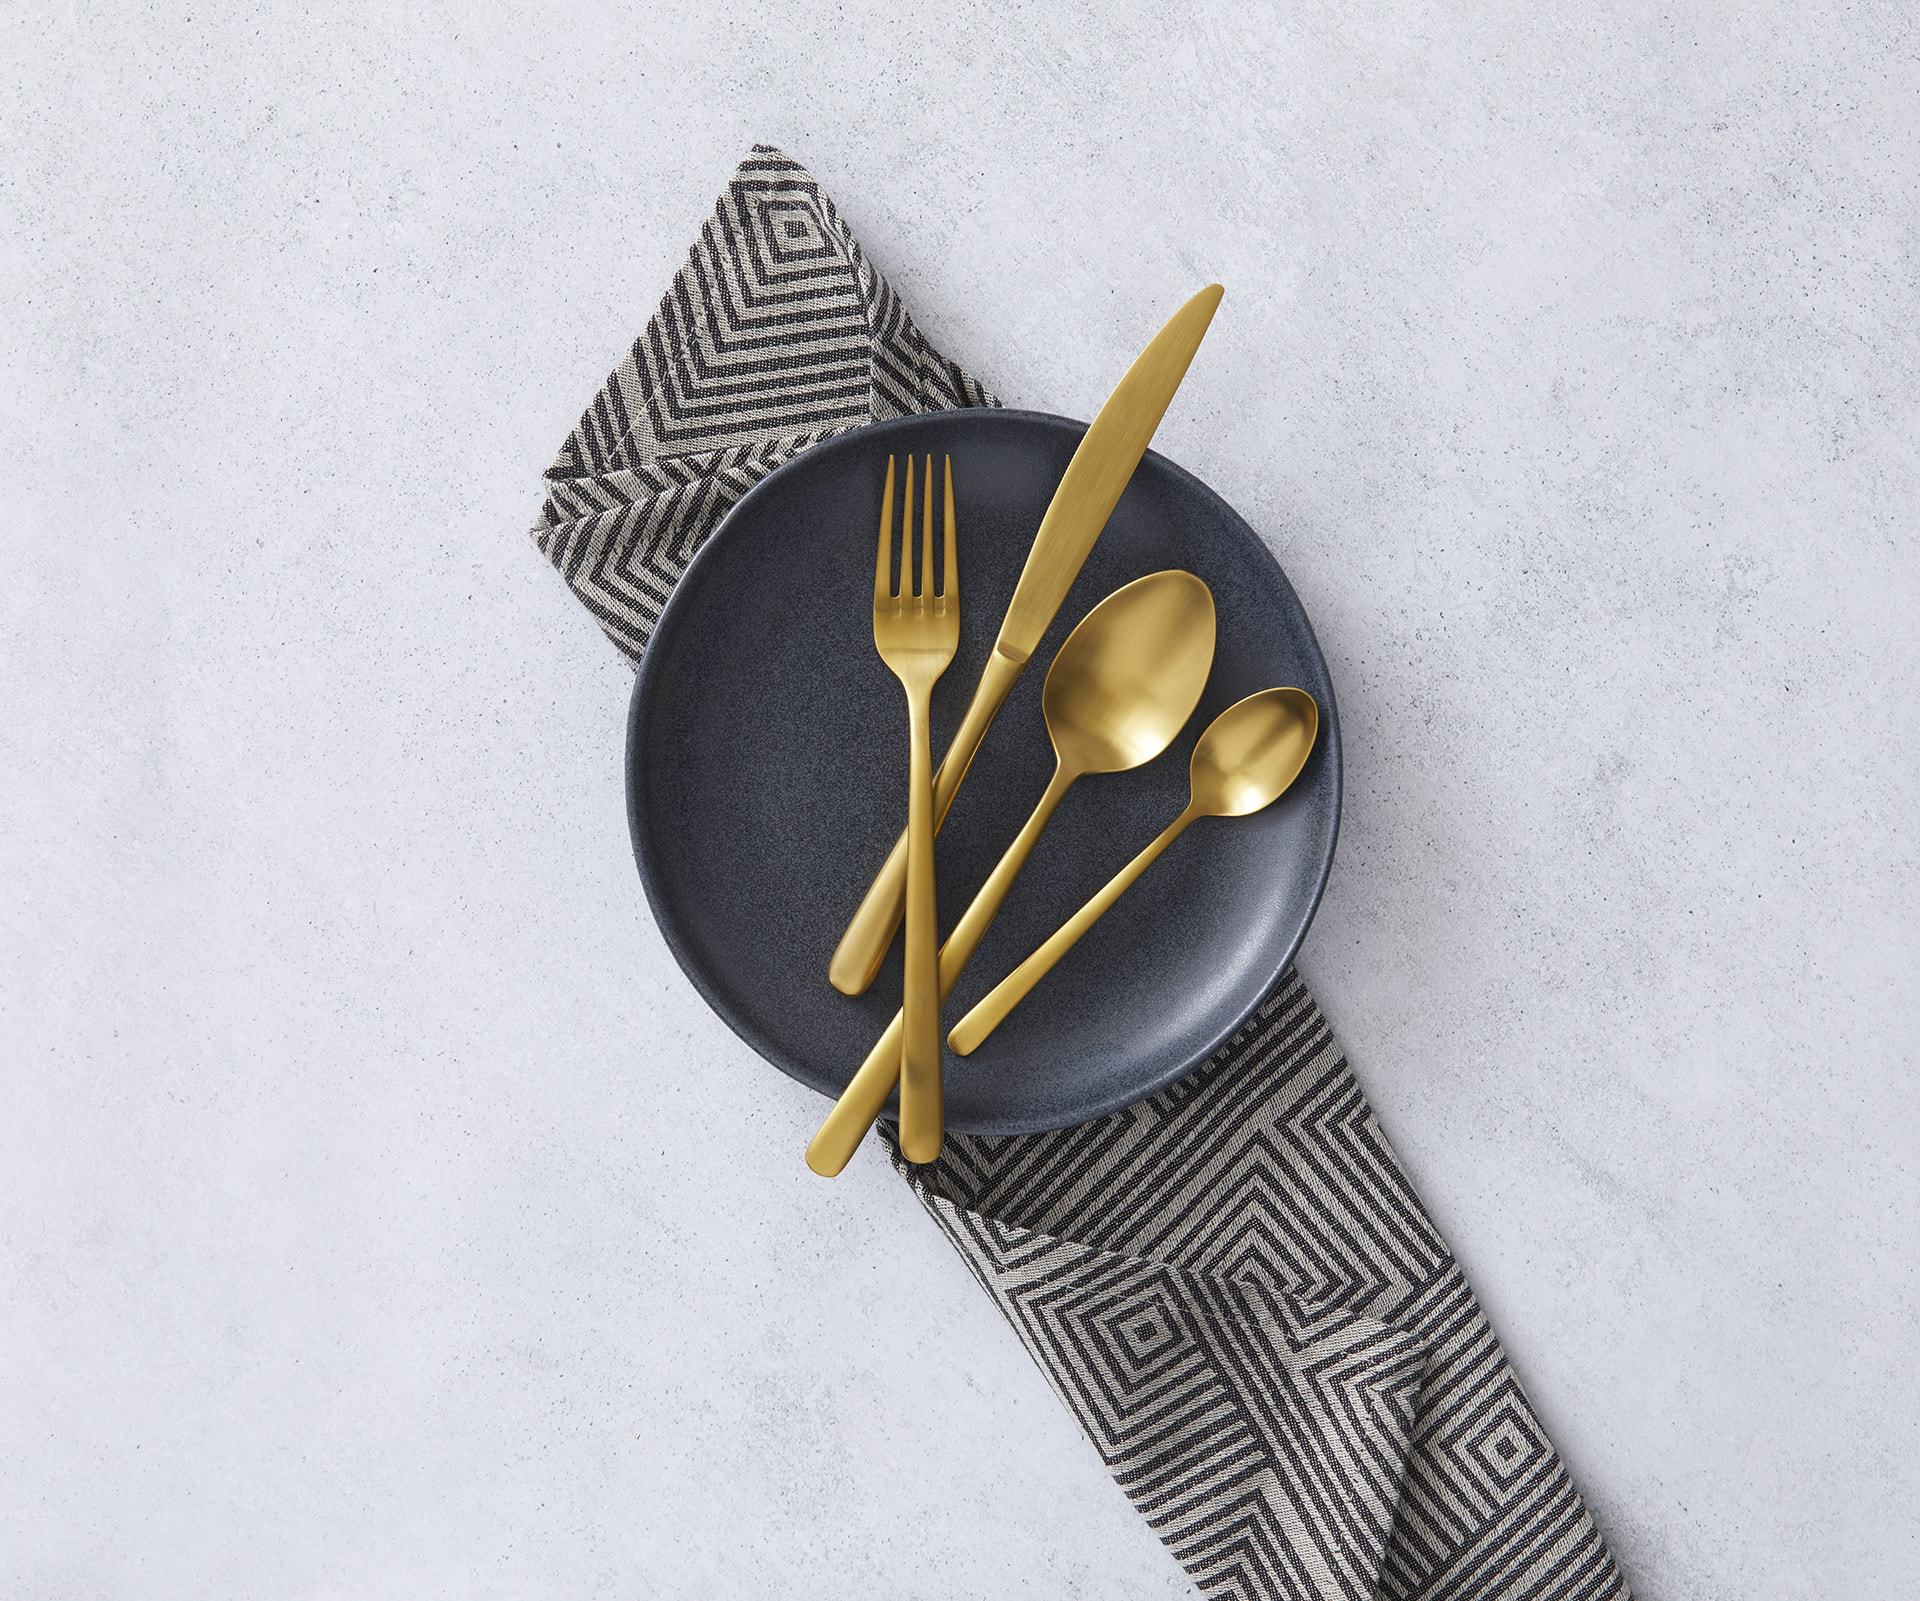 amalfi black and gold cutlery and plate on marble table